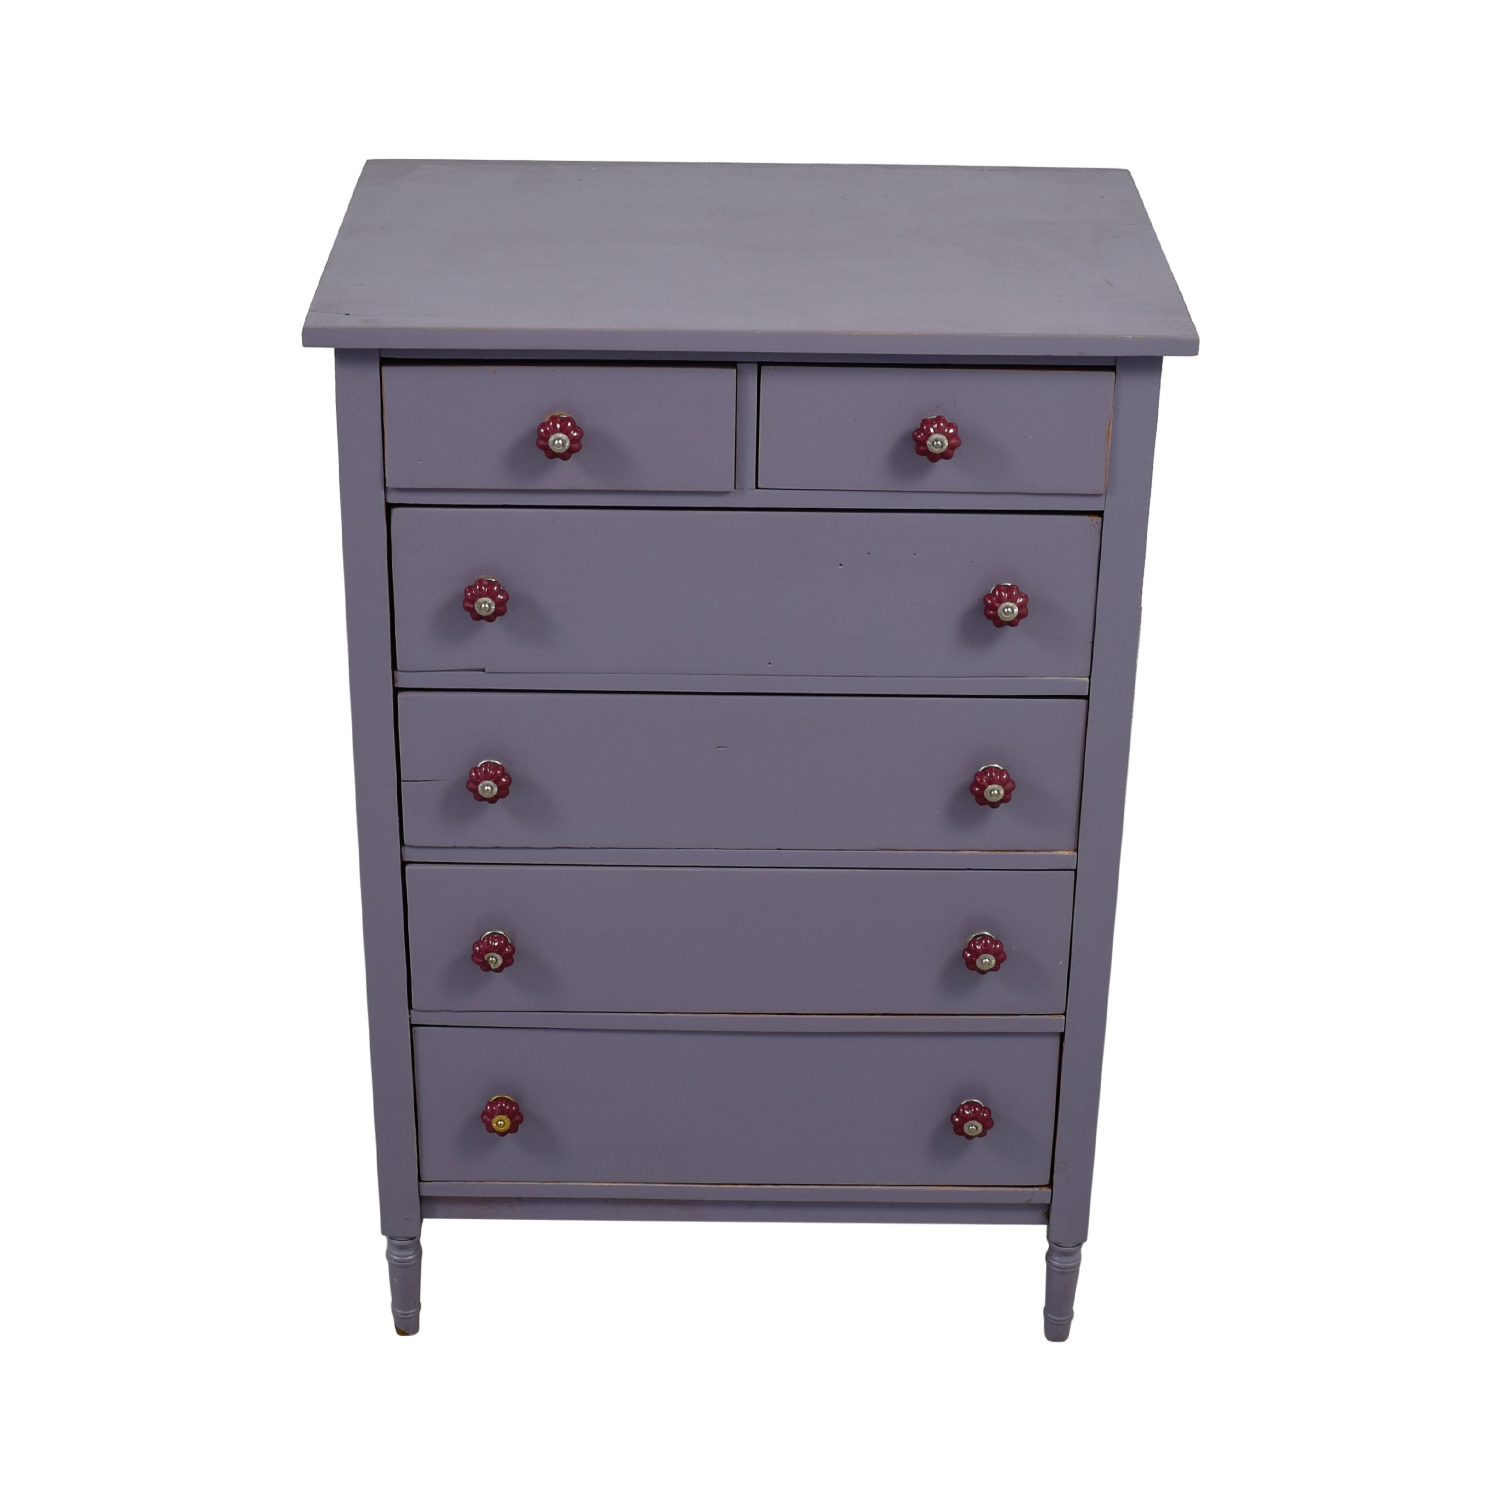 Sunshine's Lucy Sunshine's Lucy Lavender Reclaimed Wood Six-Drawer Dresser dimensions